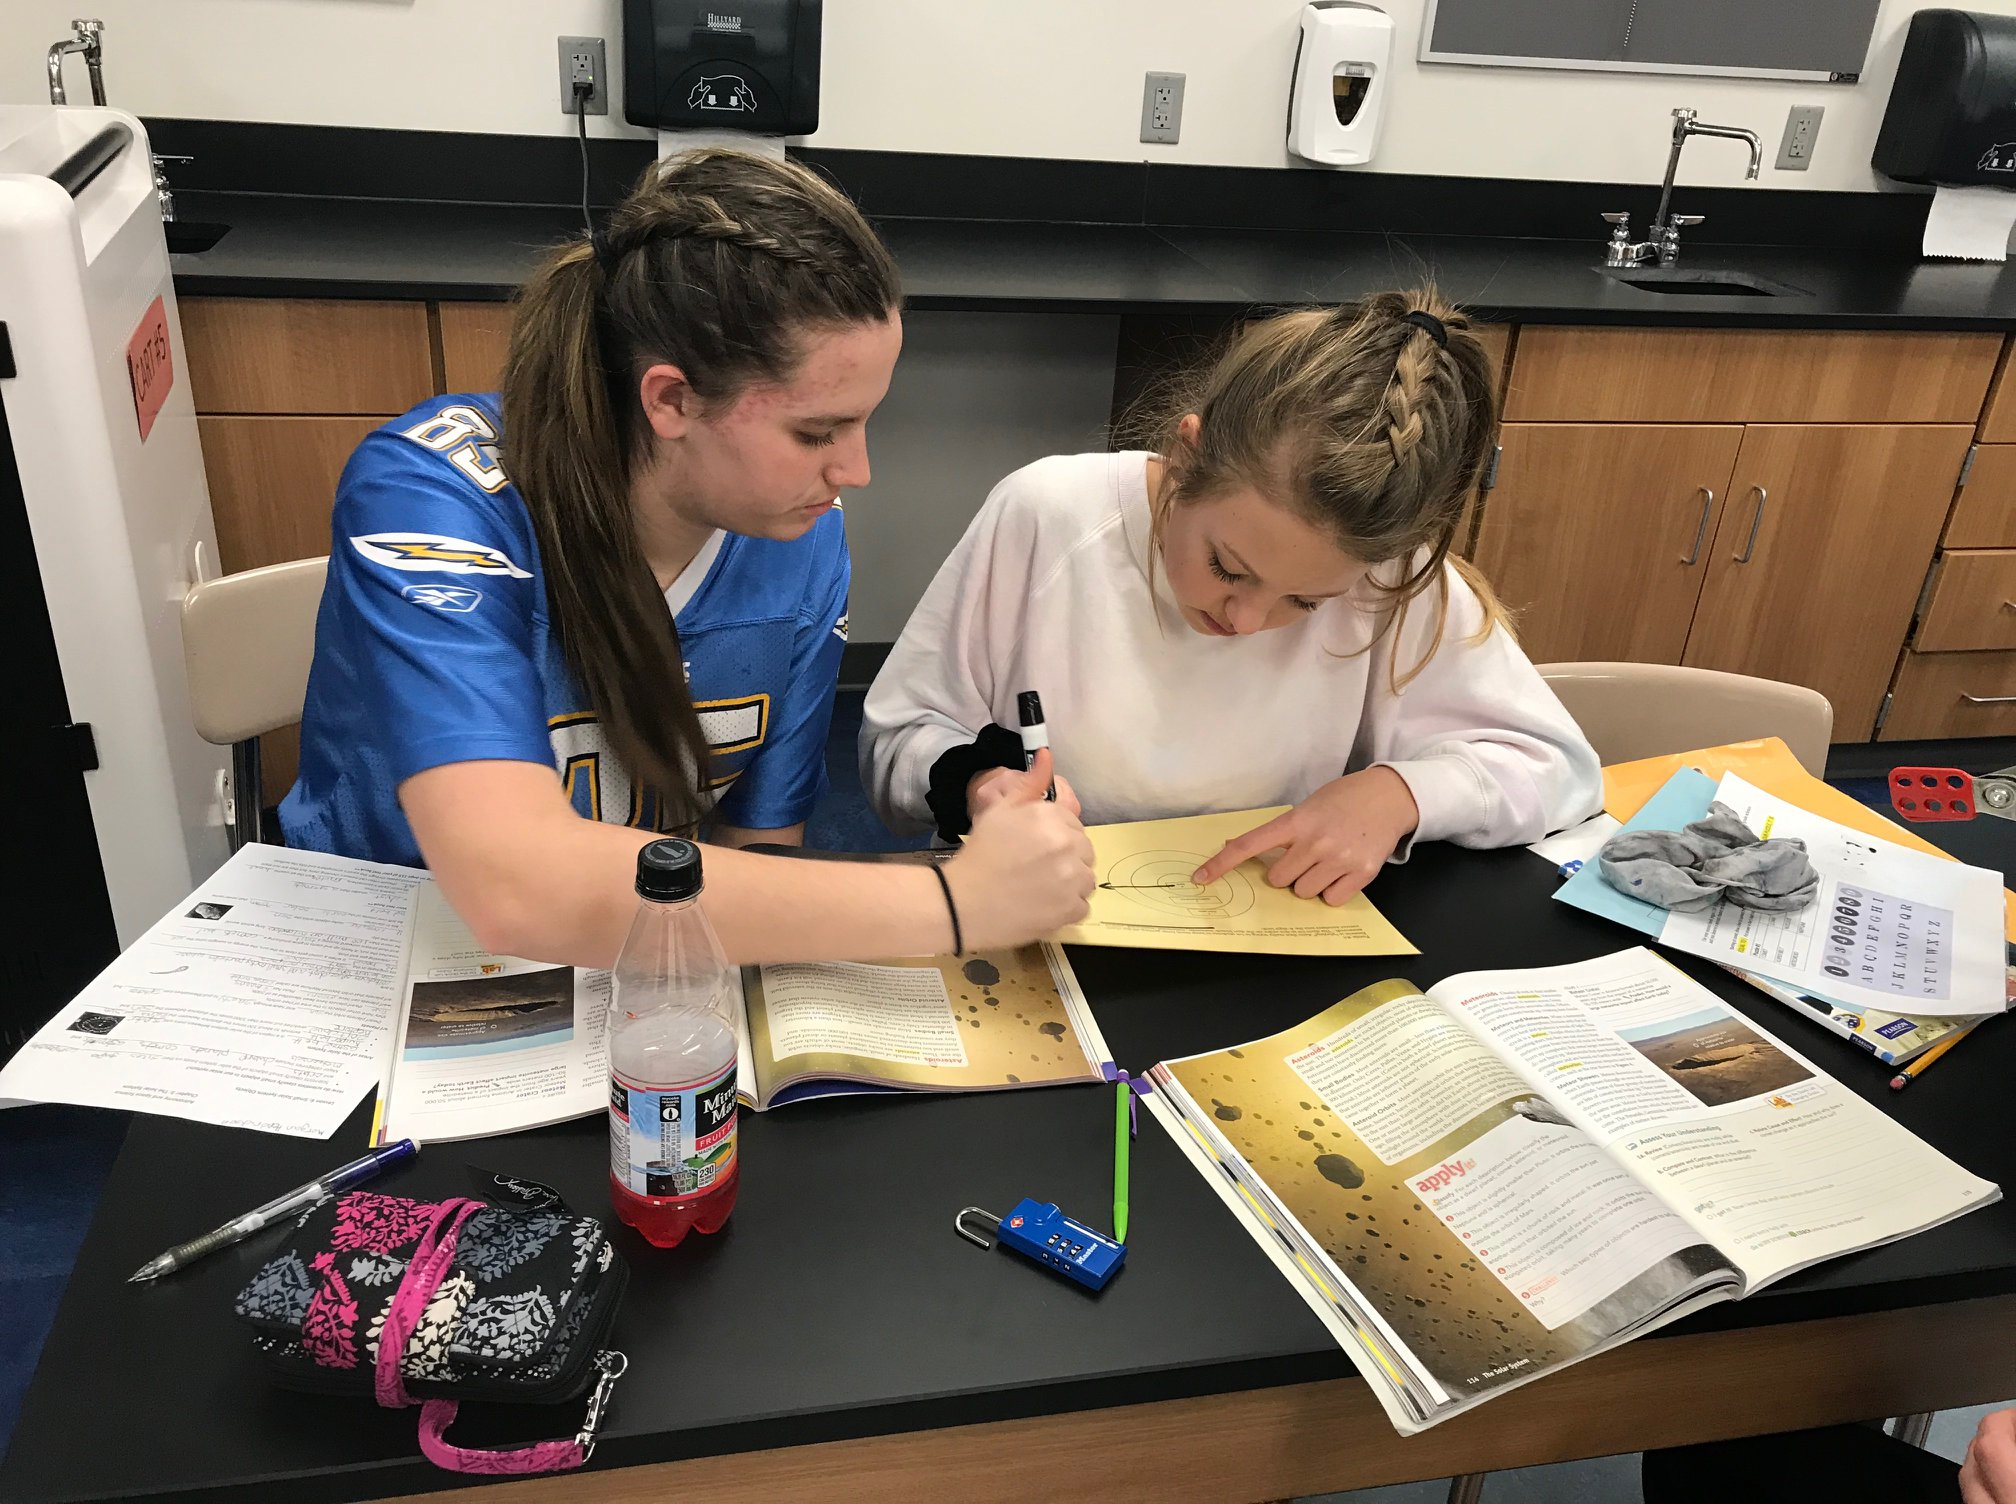 Two students working on a science project in class.